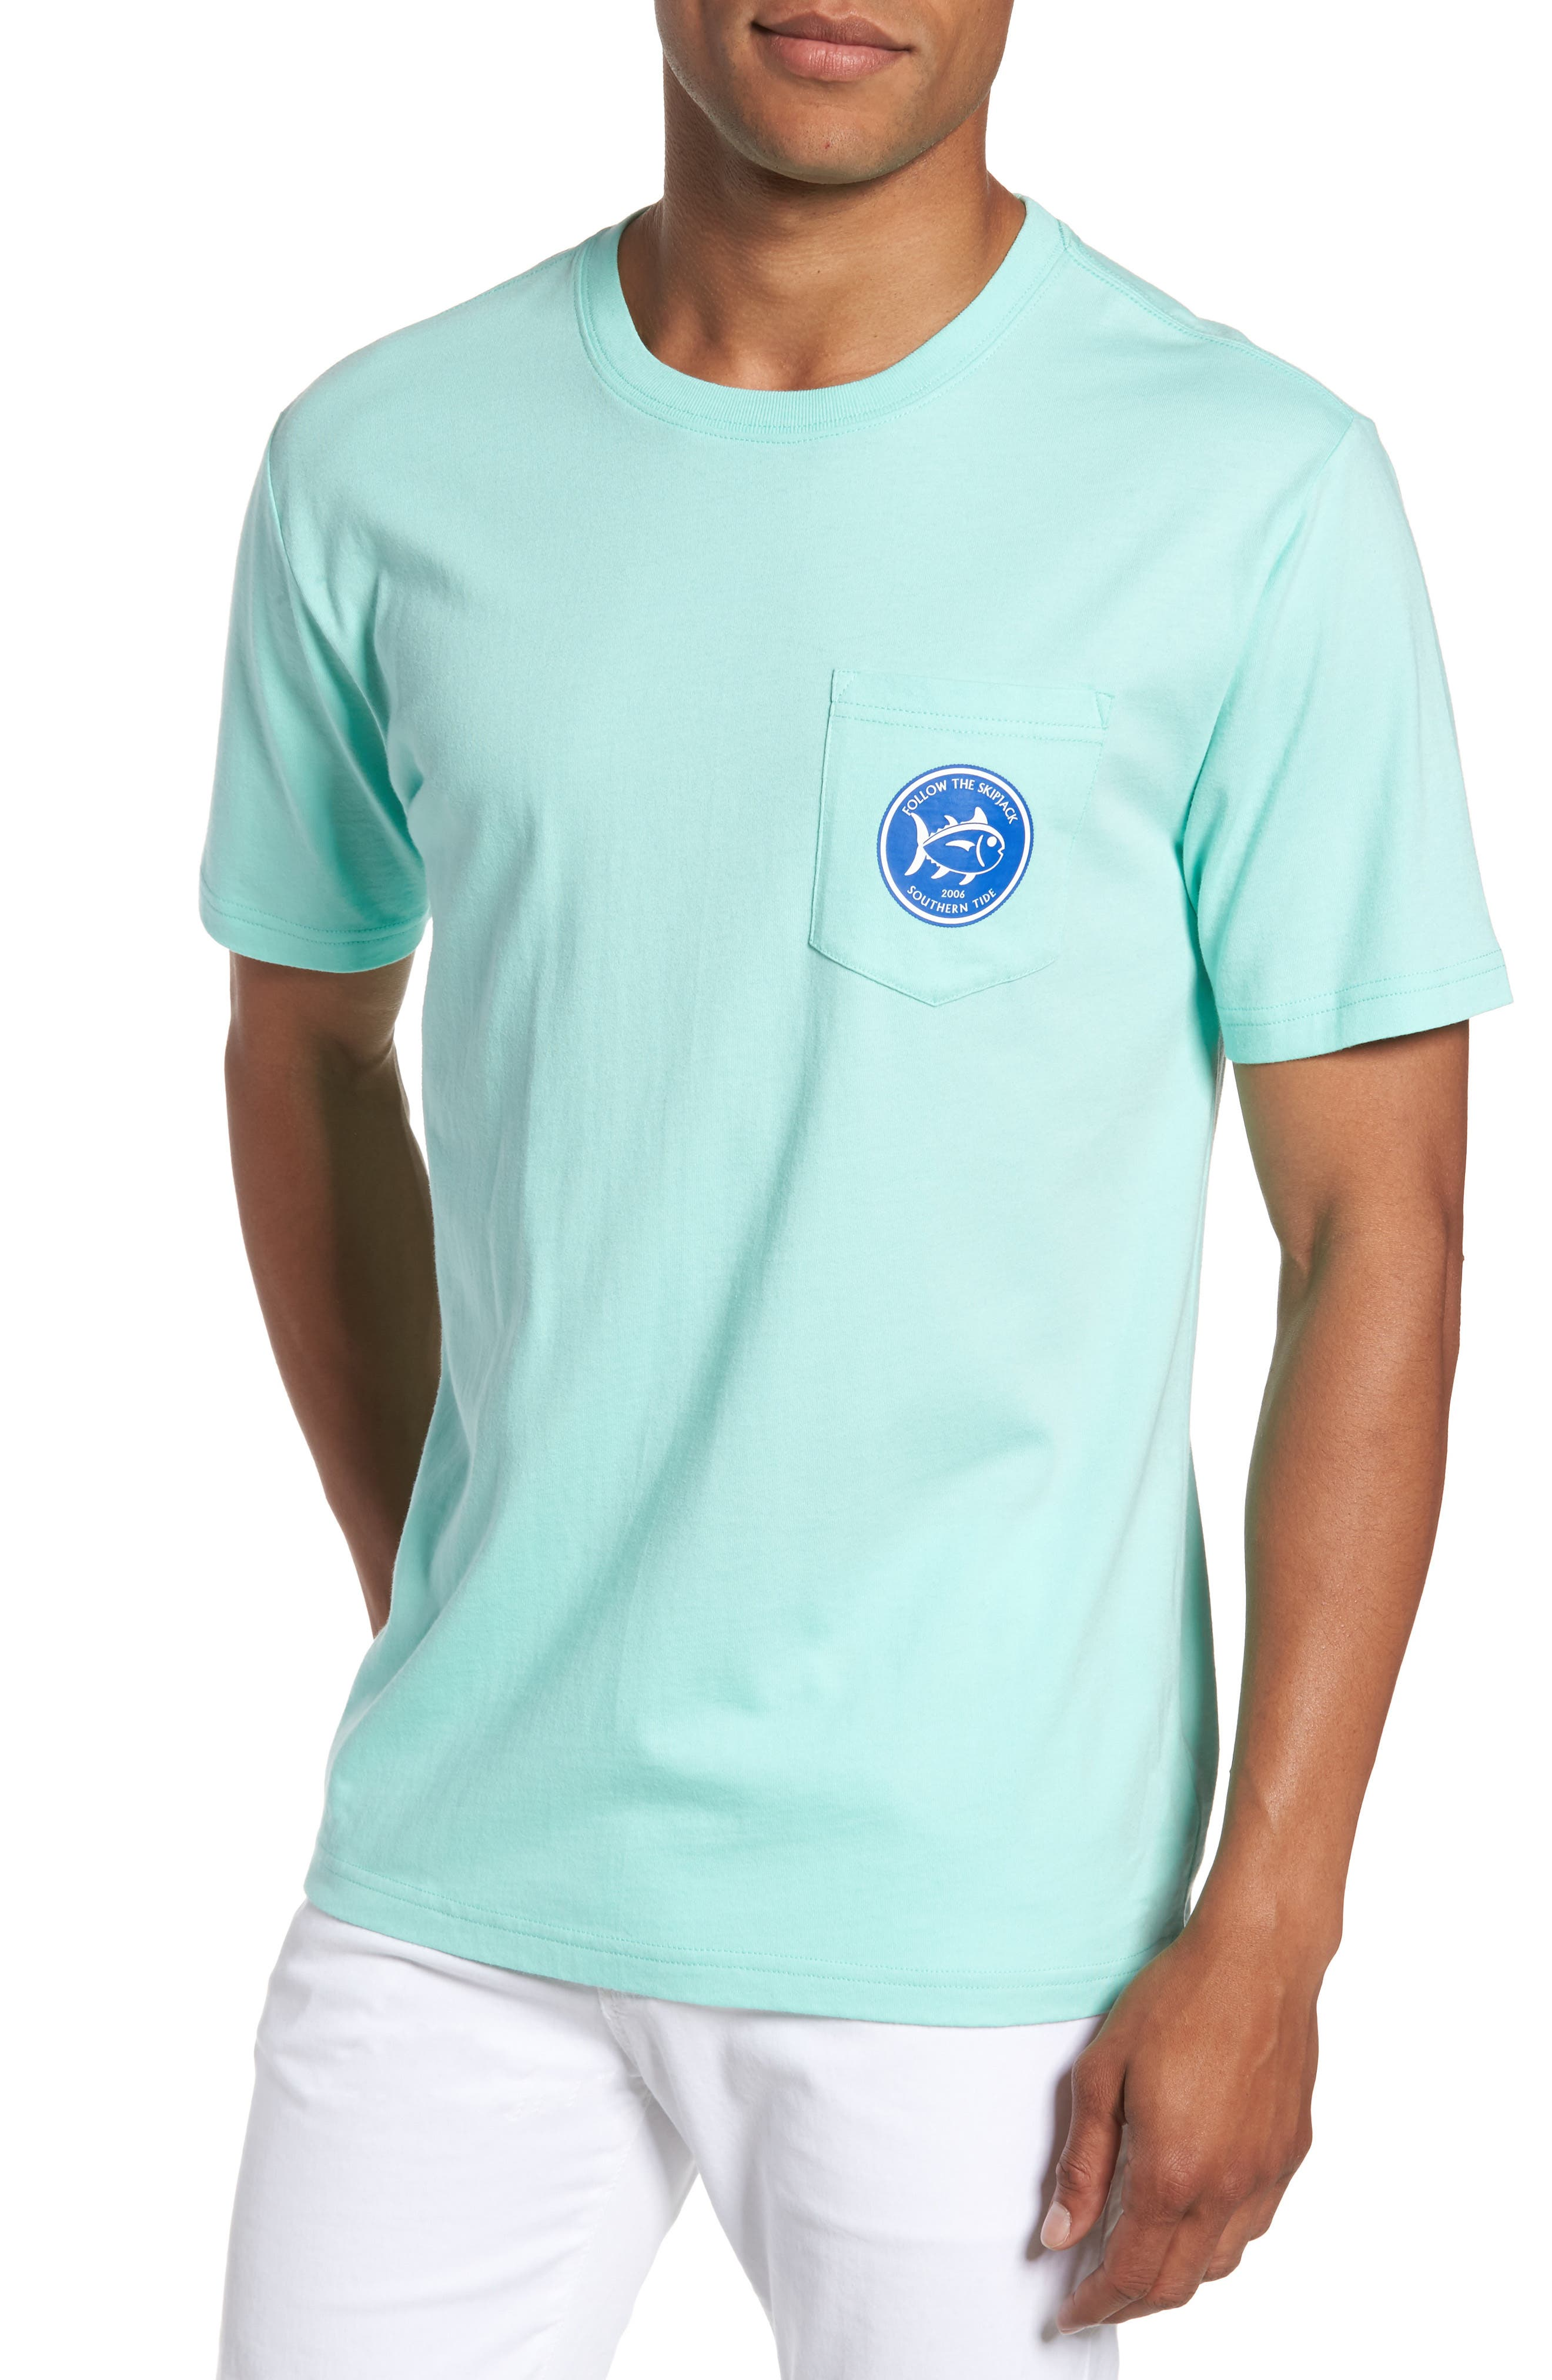 Main Image - Southern Tide Classic Fit Quarters Master T-Shirt